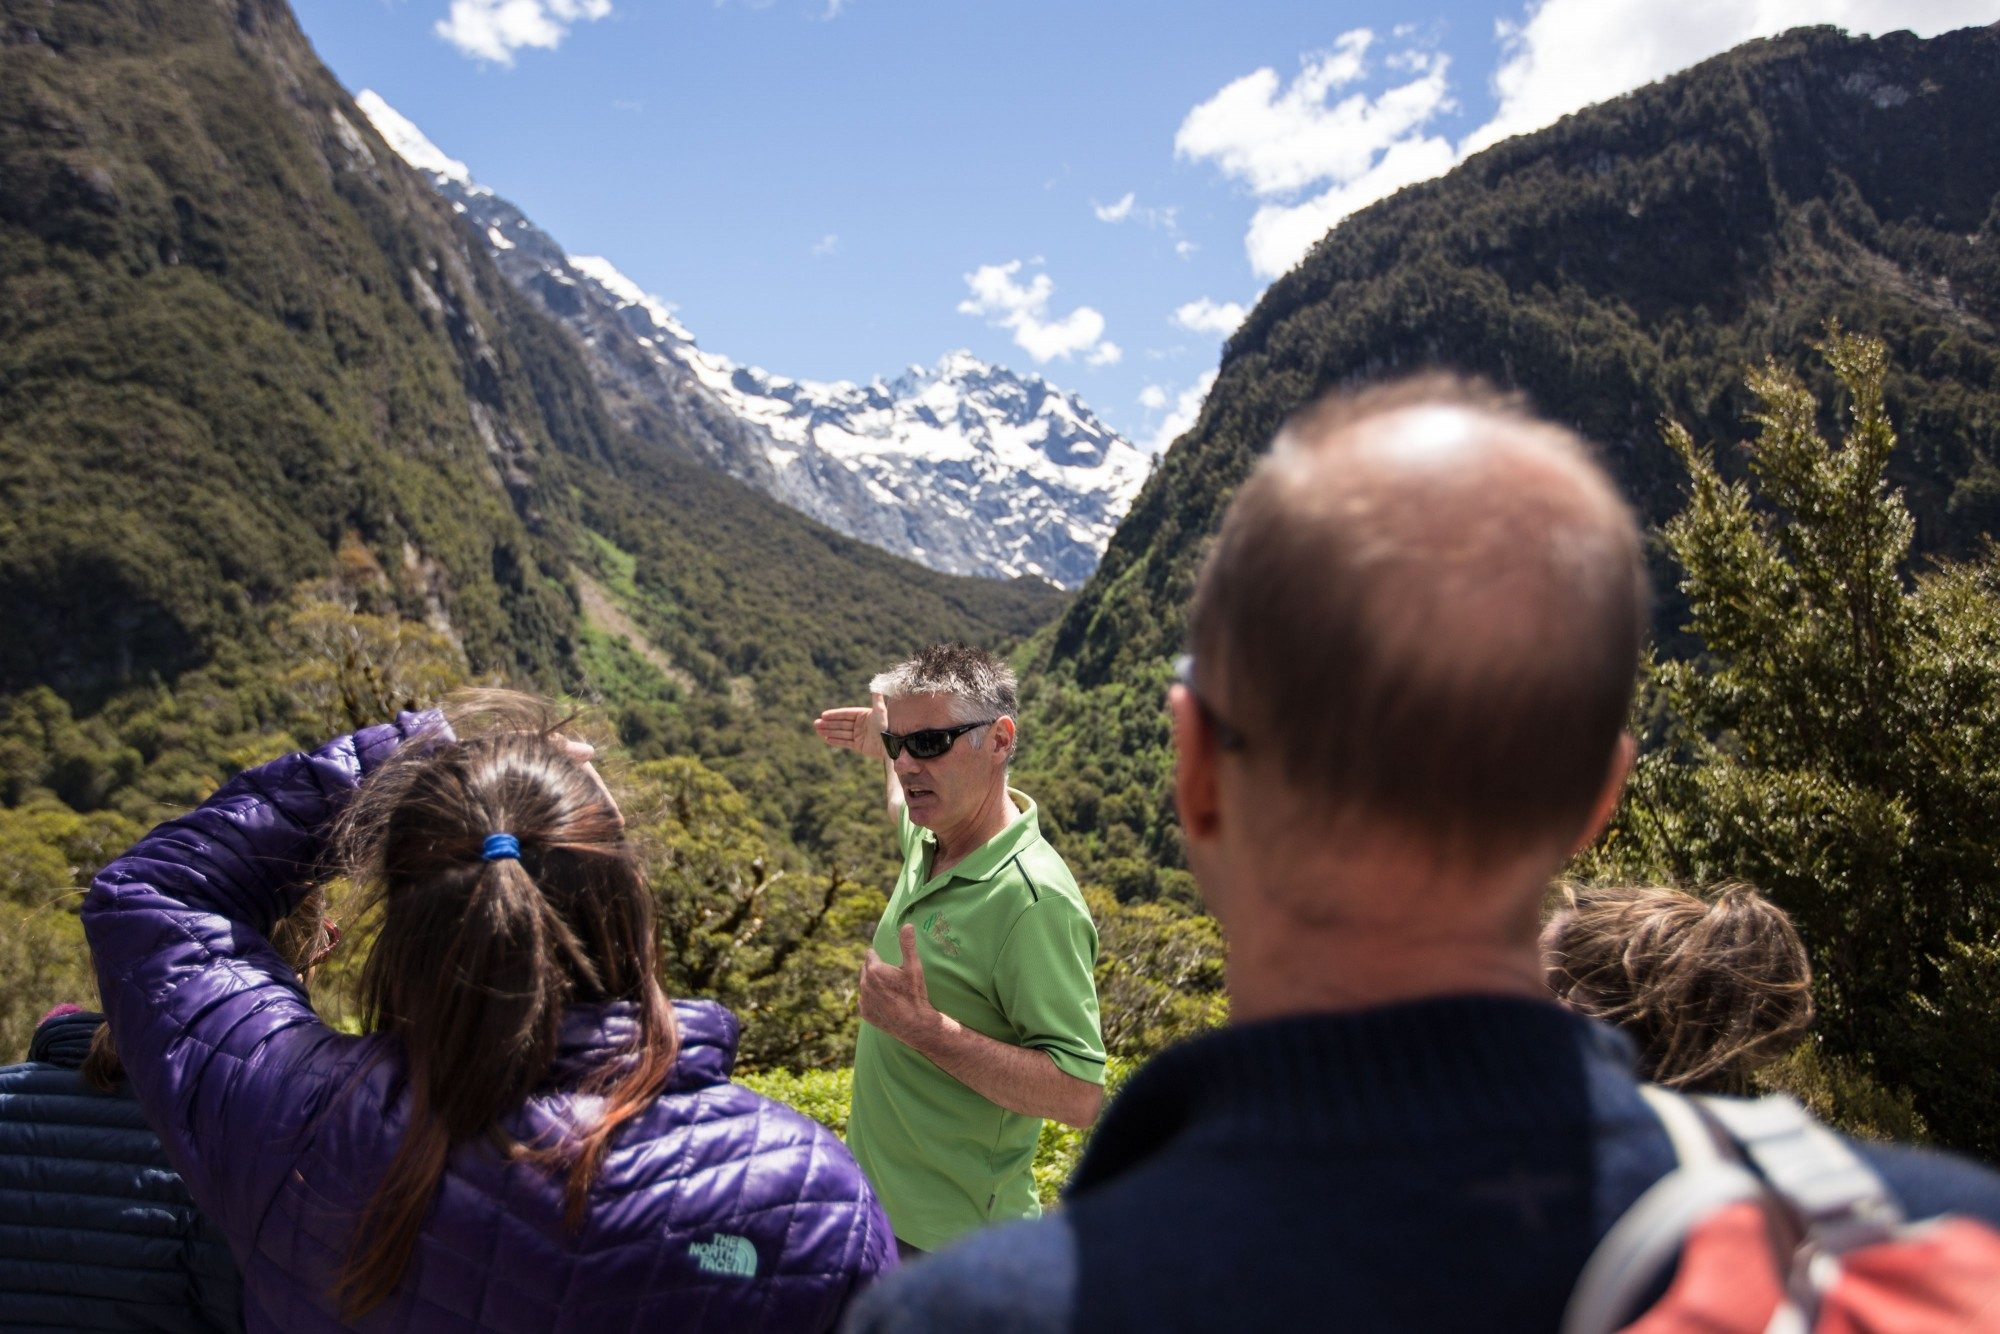 Guide infront of people showing the alpine area.